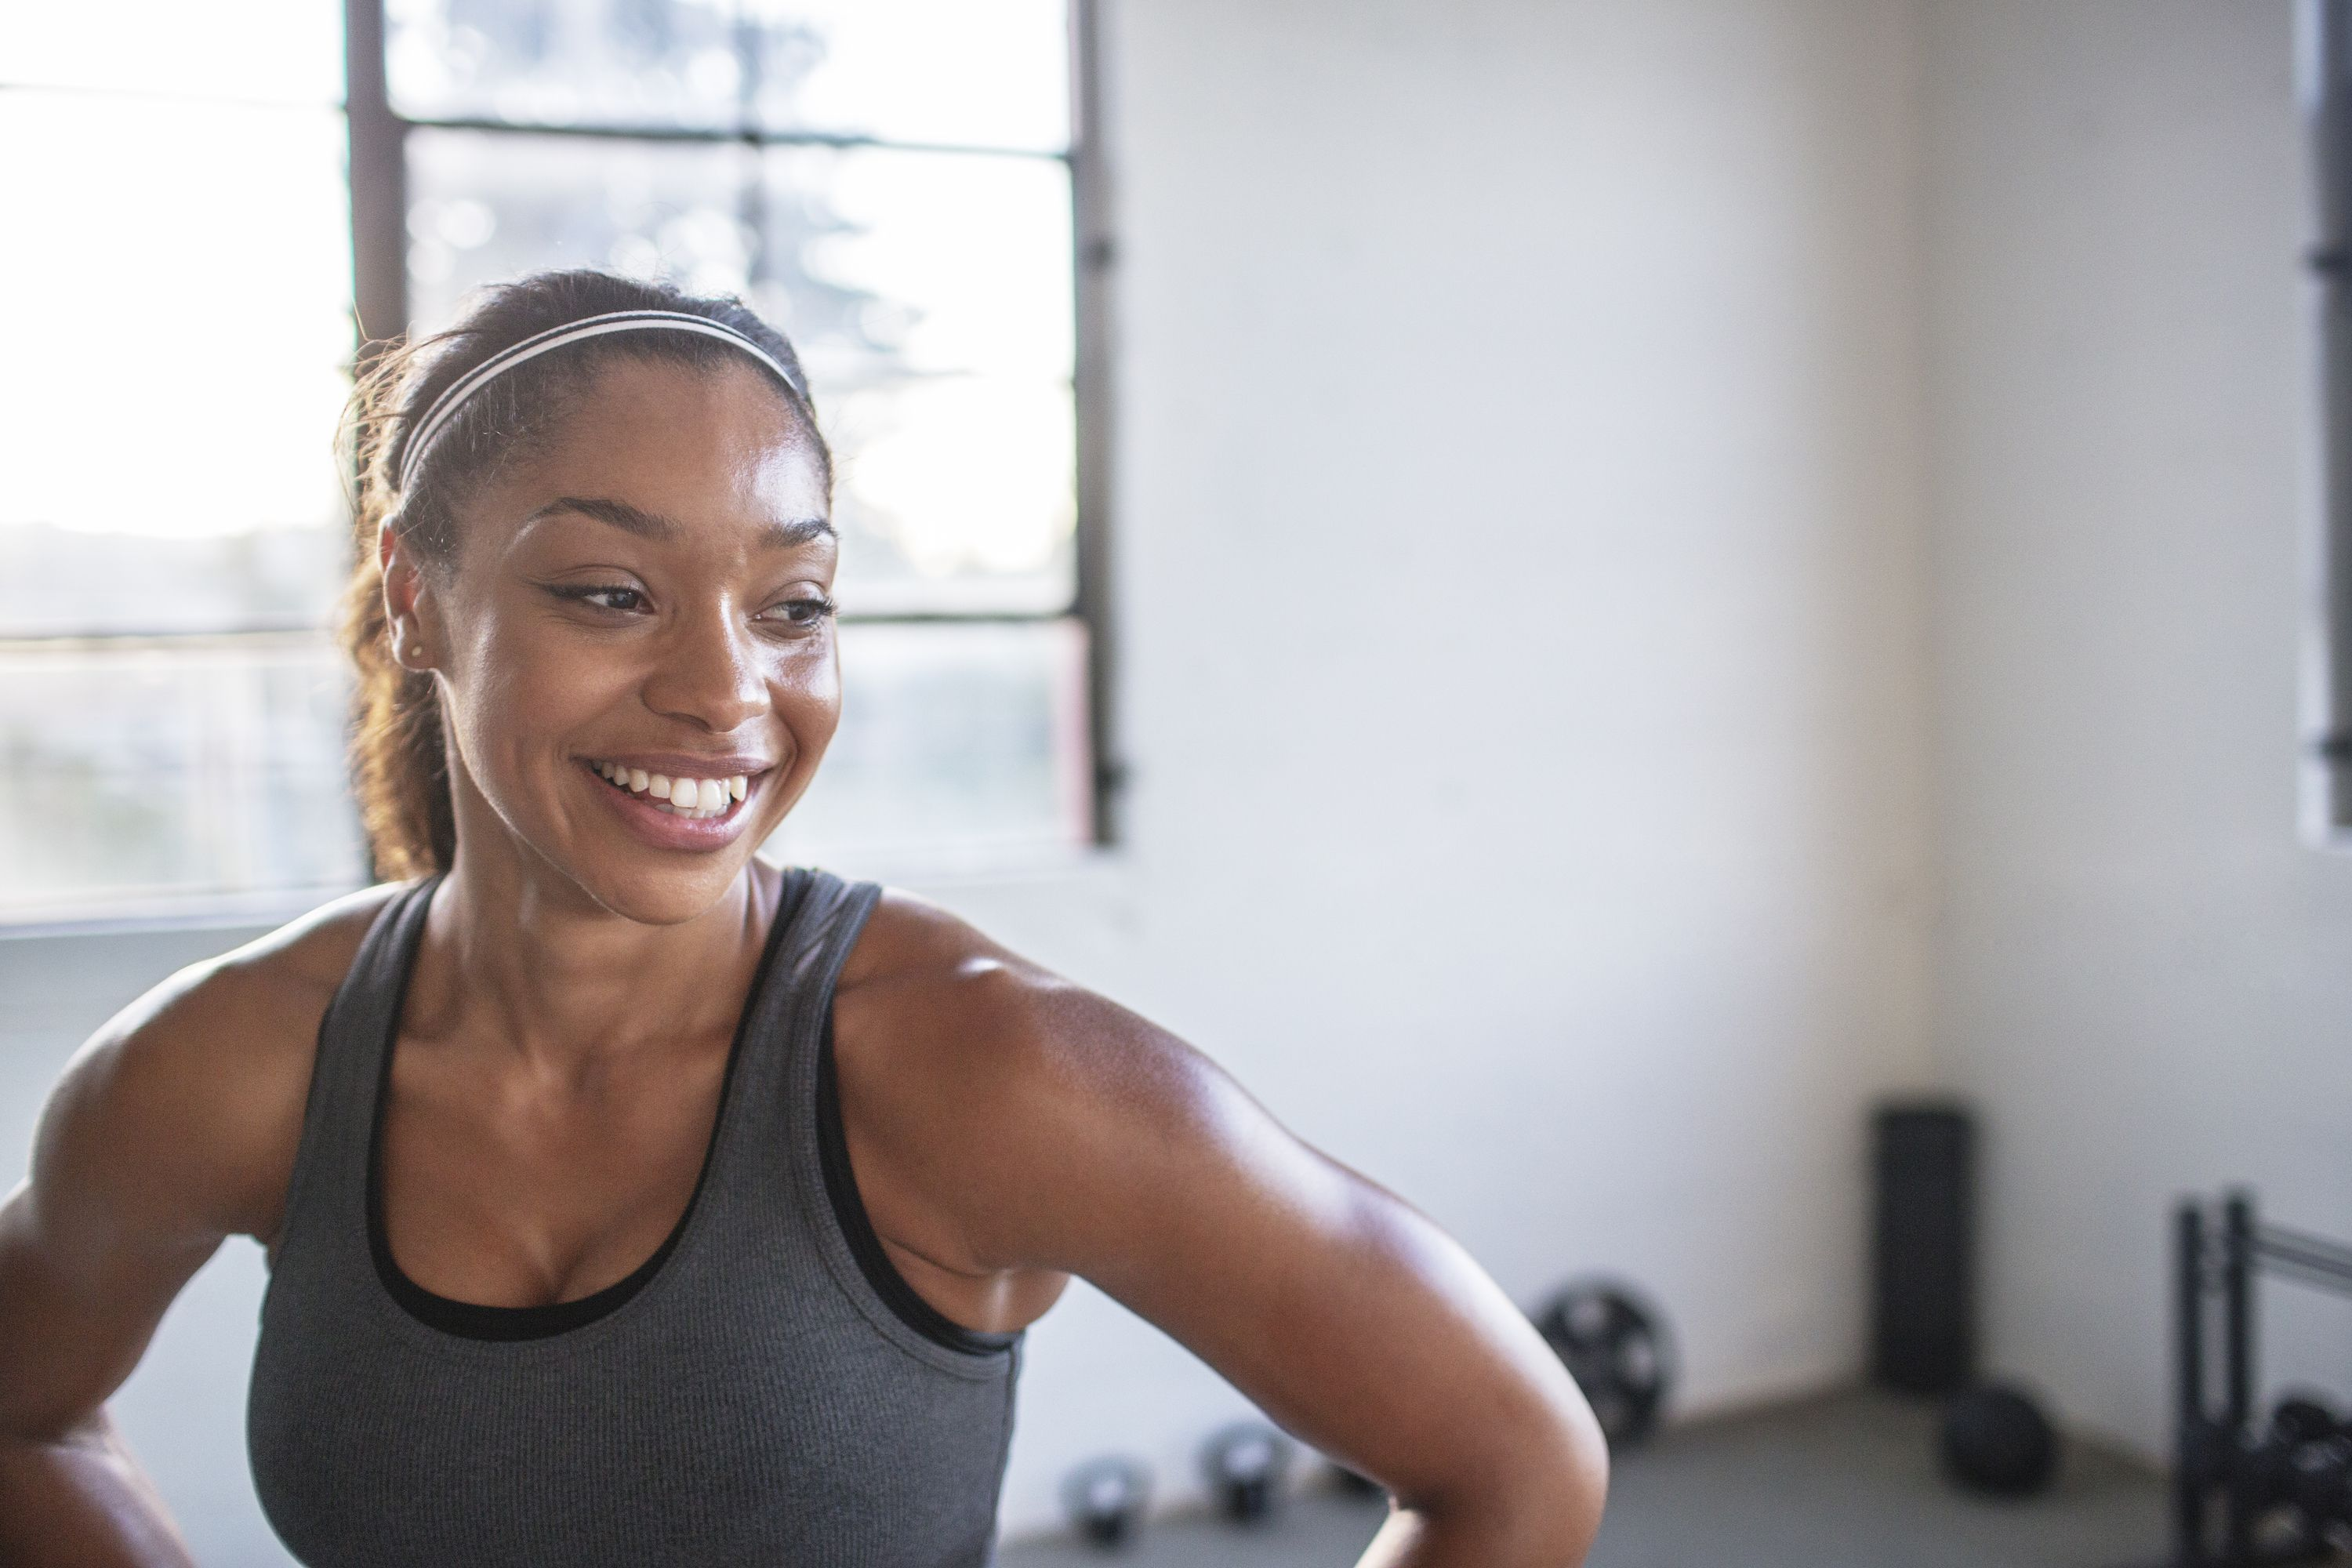 This 30-Minute HIIT Workout Targets Your Whole Bod For An All-Over Burn